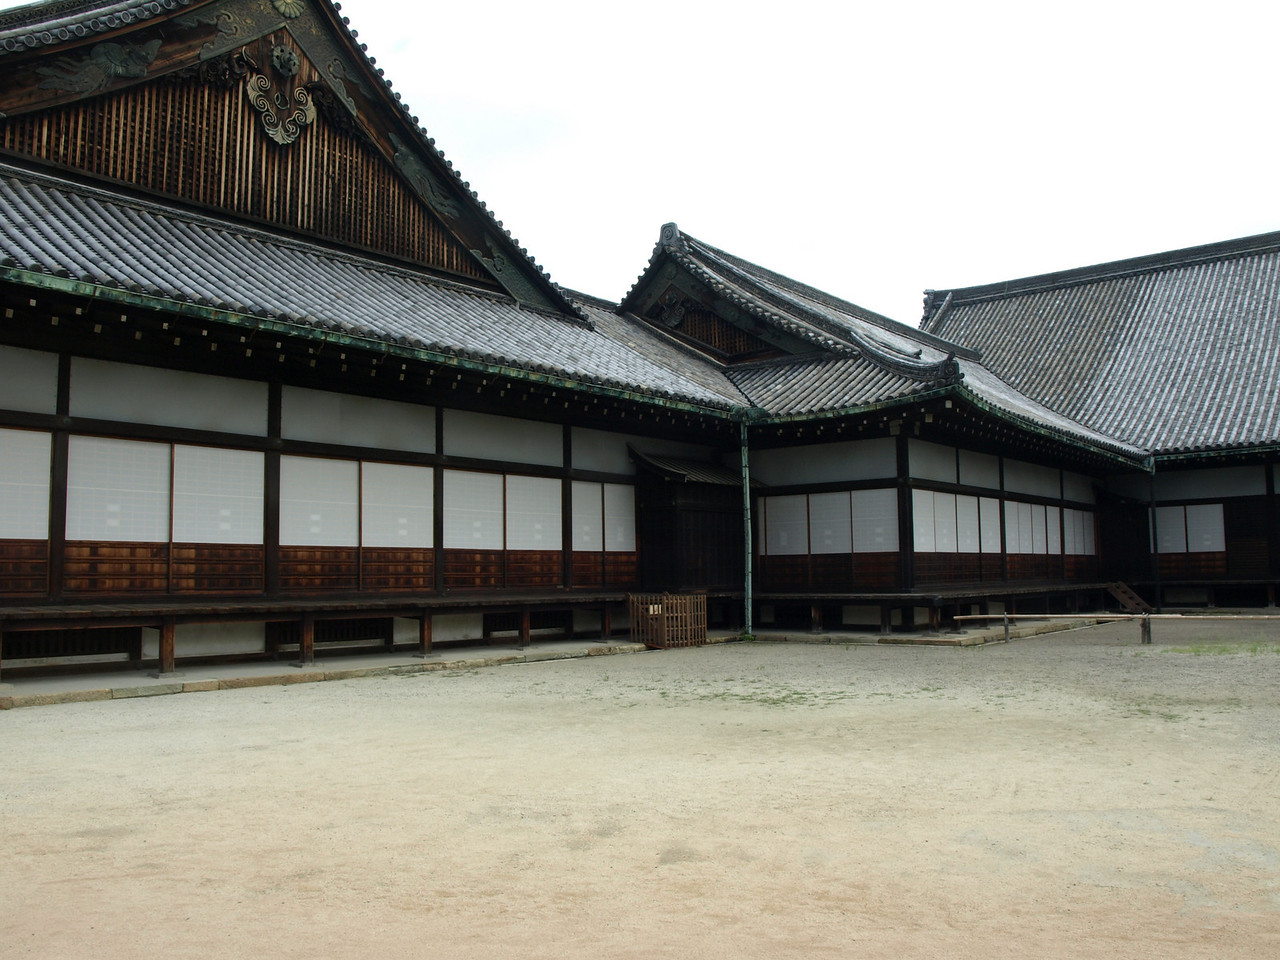 This is the Ninomaru Palace complex, the only remnant from the early Edo period to be found within the Nijo Castle complex